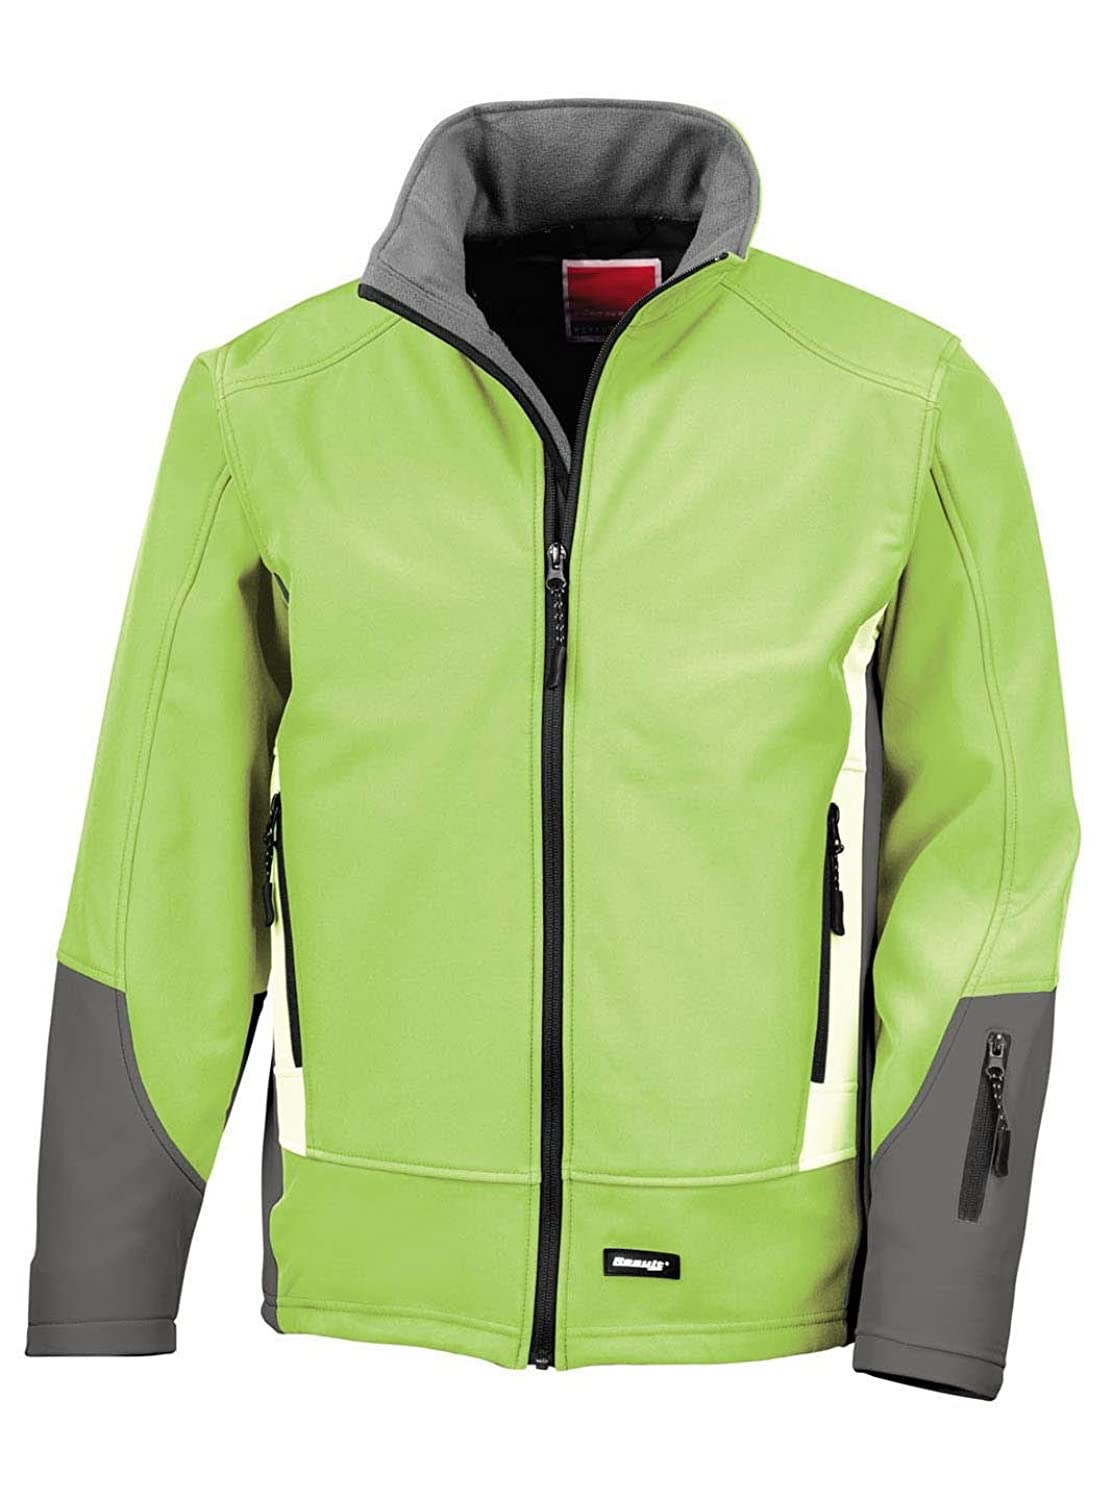 Result R119X Blade 3 Layer Softshell Jacket Lime/Charcoal/Pale Grey L